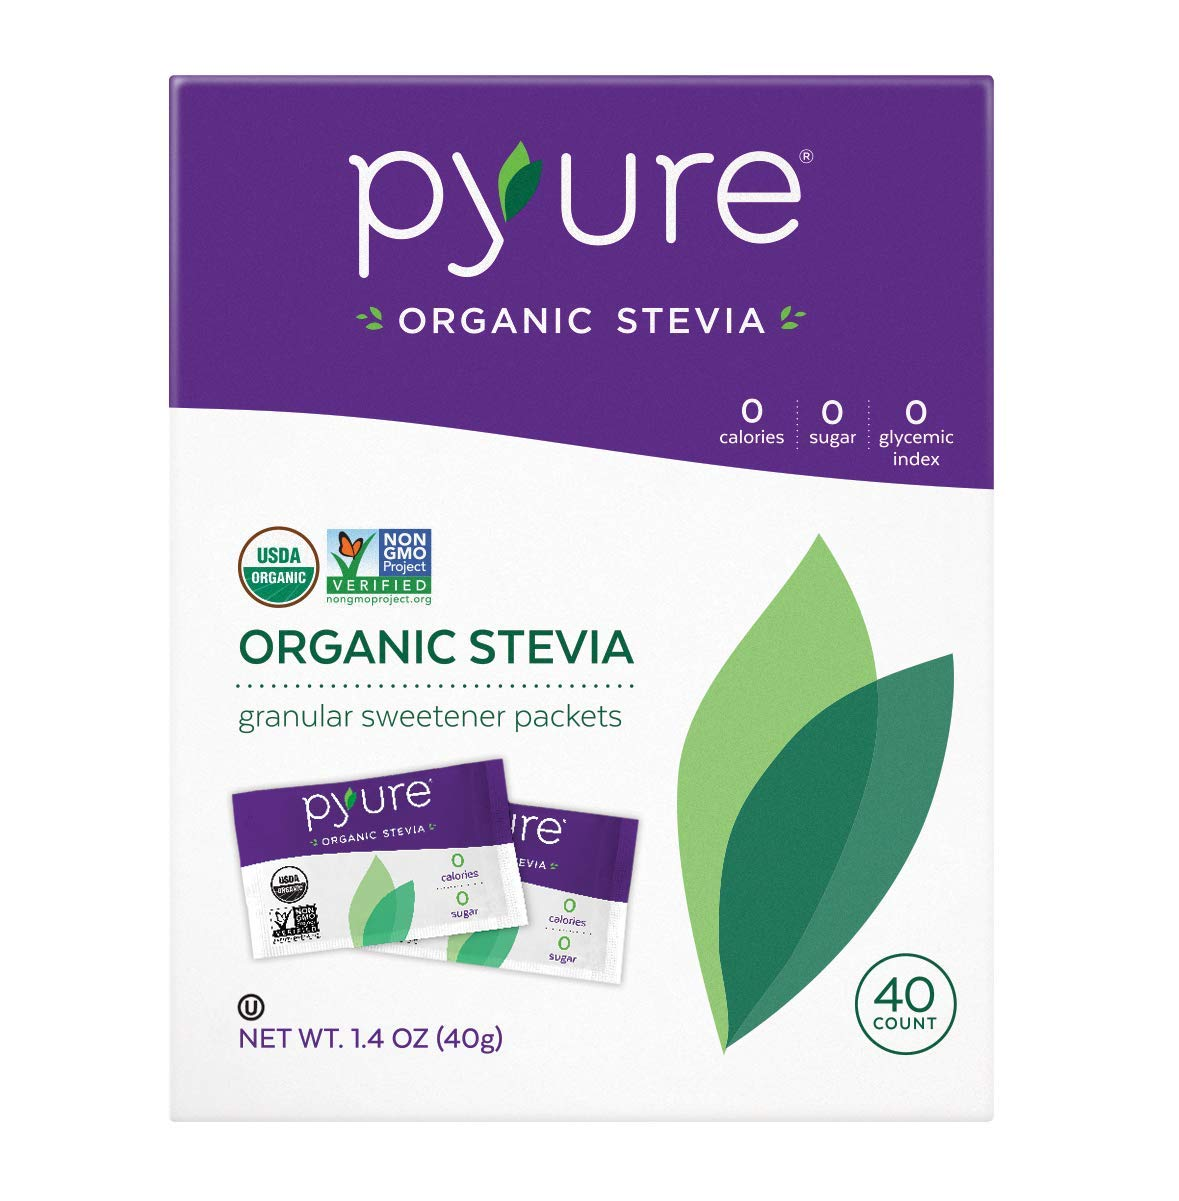 Pyure Organic Stevia Sweetener Packets, Granulated Sugar Substitute, 40 Count by Pyure